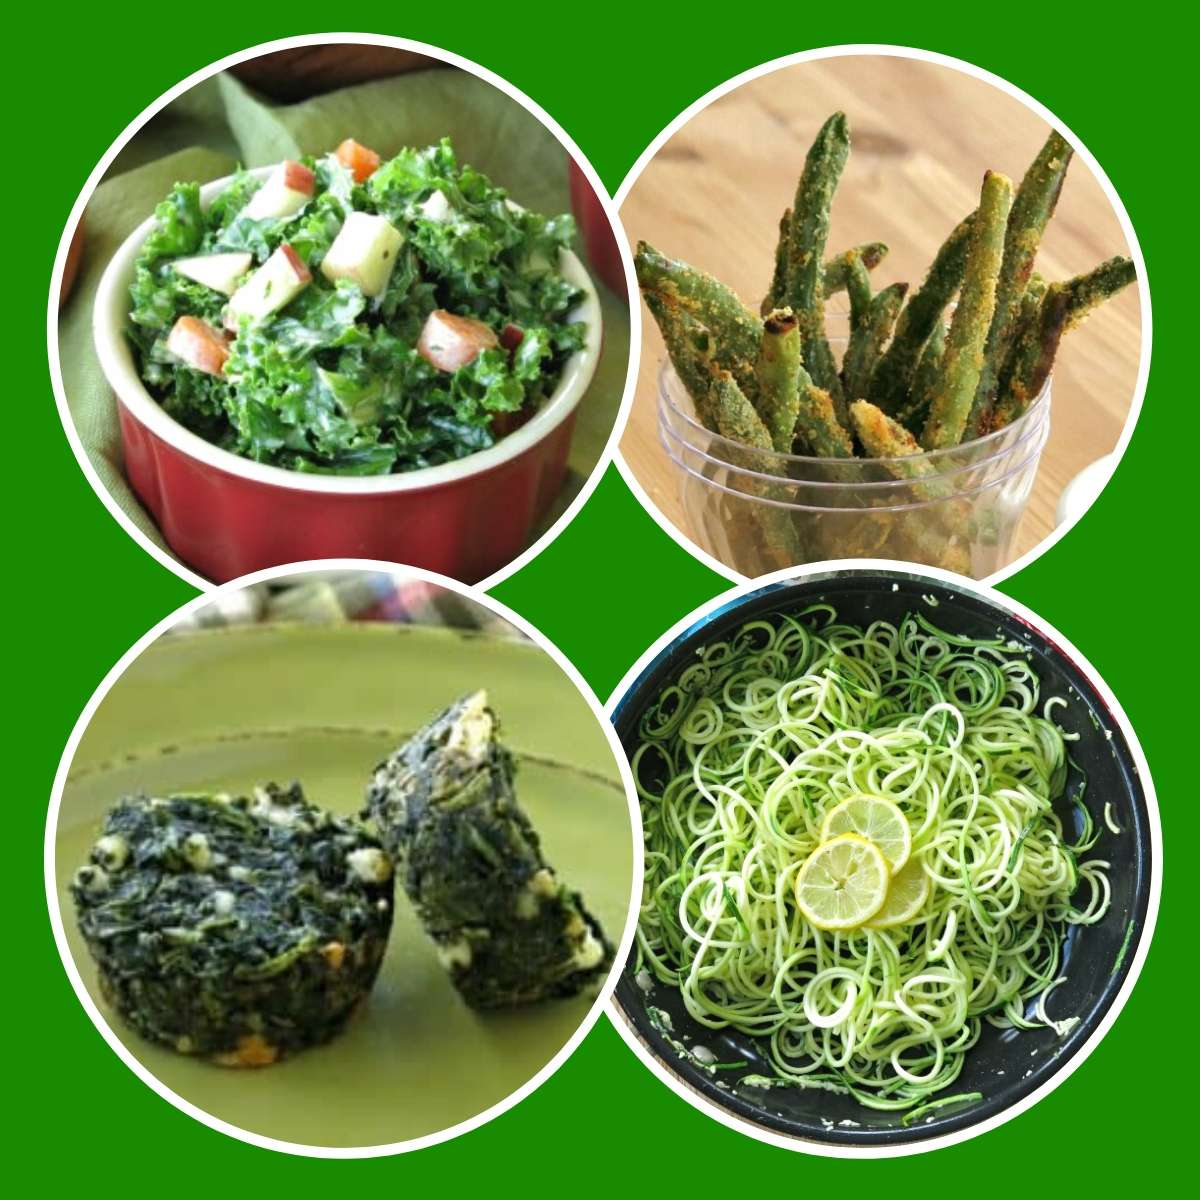 Collage of healthy green recipes